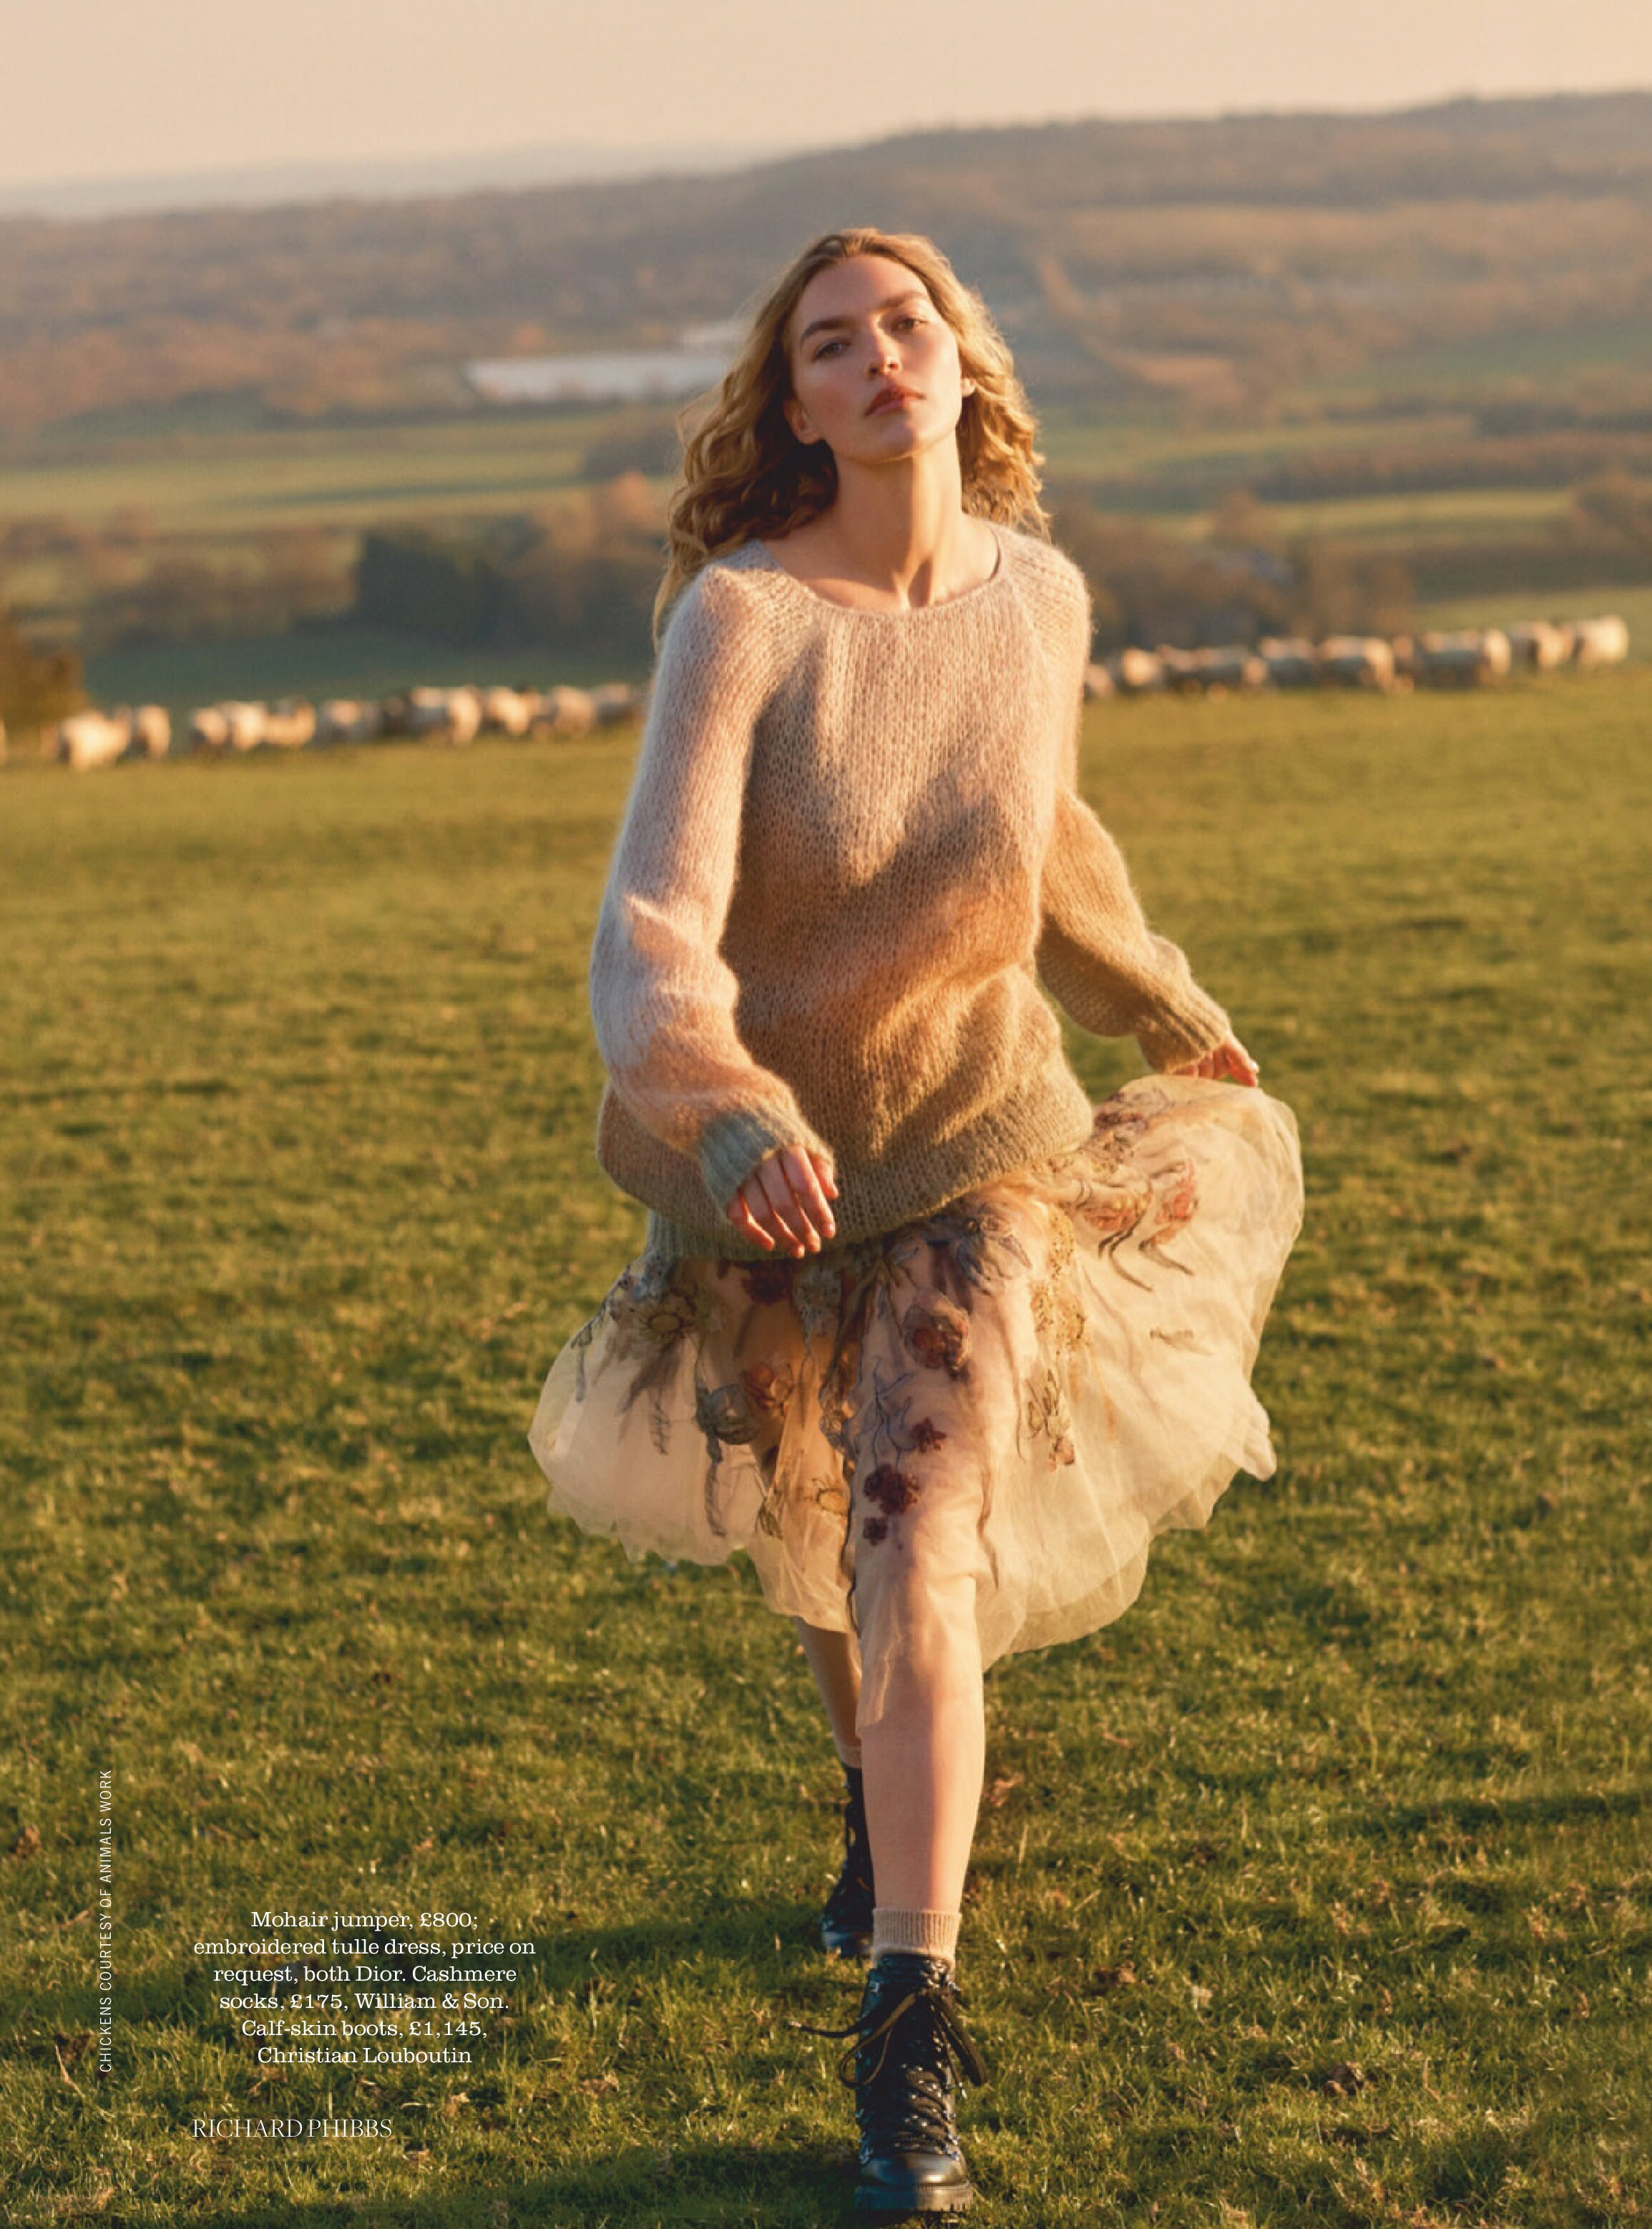 MOHAIR JUMPER; EMBROIDERED TULLE DRESS, PRICE ON REQUEST, BOTH DIOR. CASHMERE SOCKS, WILLIAM & SON. CALF-SKIN BOOTS, CHRISTIAN LOUBOUTIN. RICHARD PHIBBS